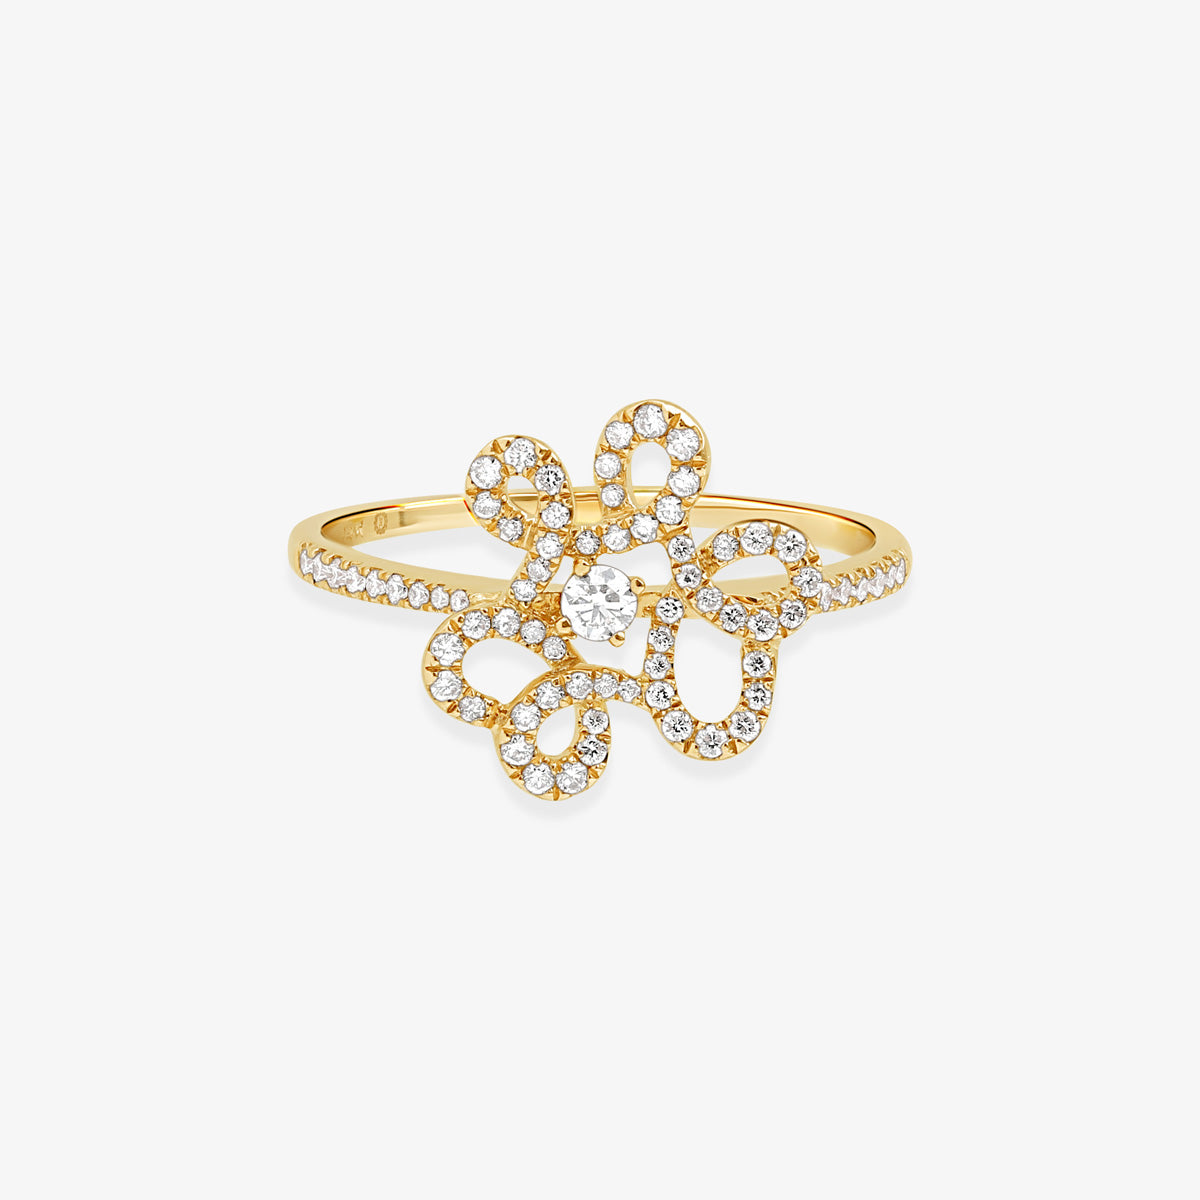 Loops Of Gold And Diamond Statement Ring - estellacollection